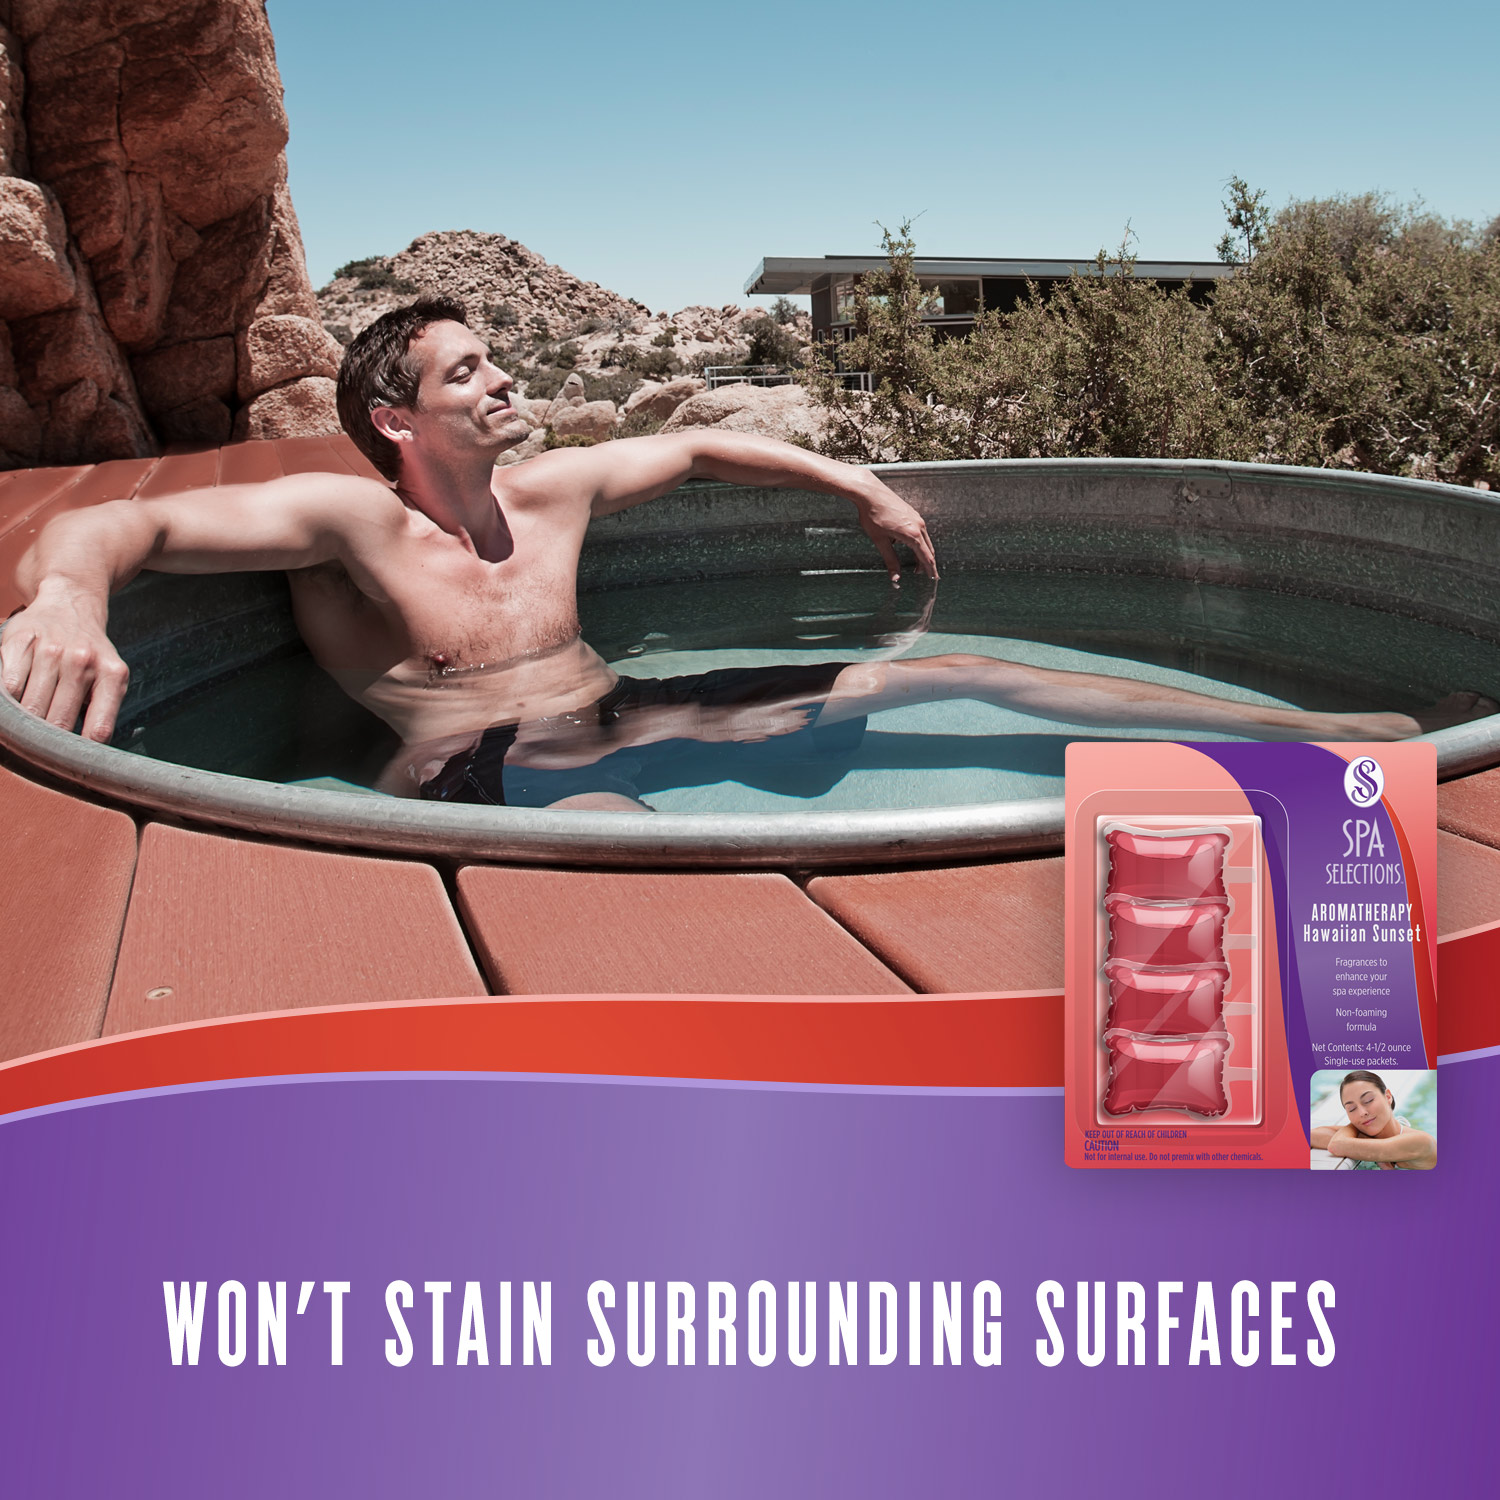 Man enjoying a hot tub in the desert. Spa Selections Hawaiian Sunset aromatherapy won't stain surrounding surfaces.